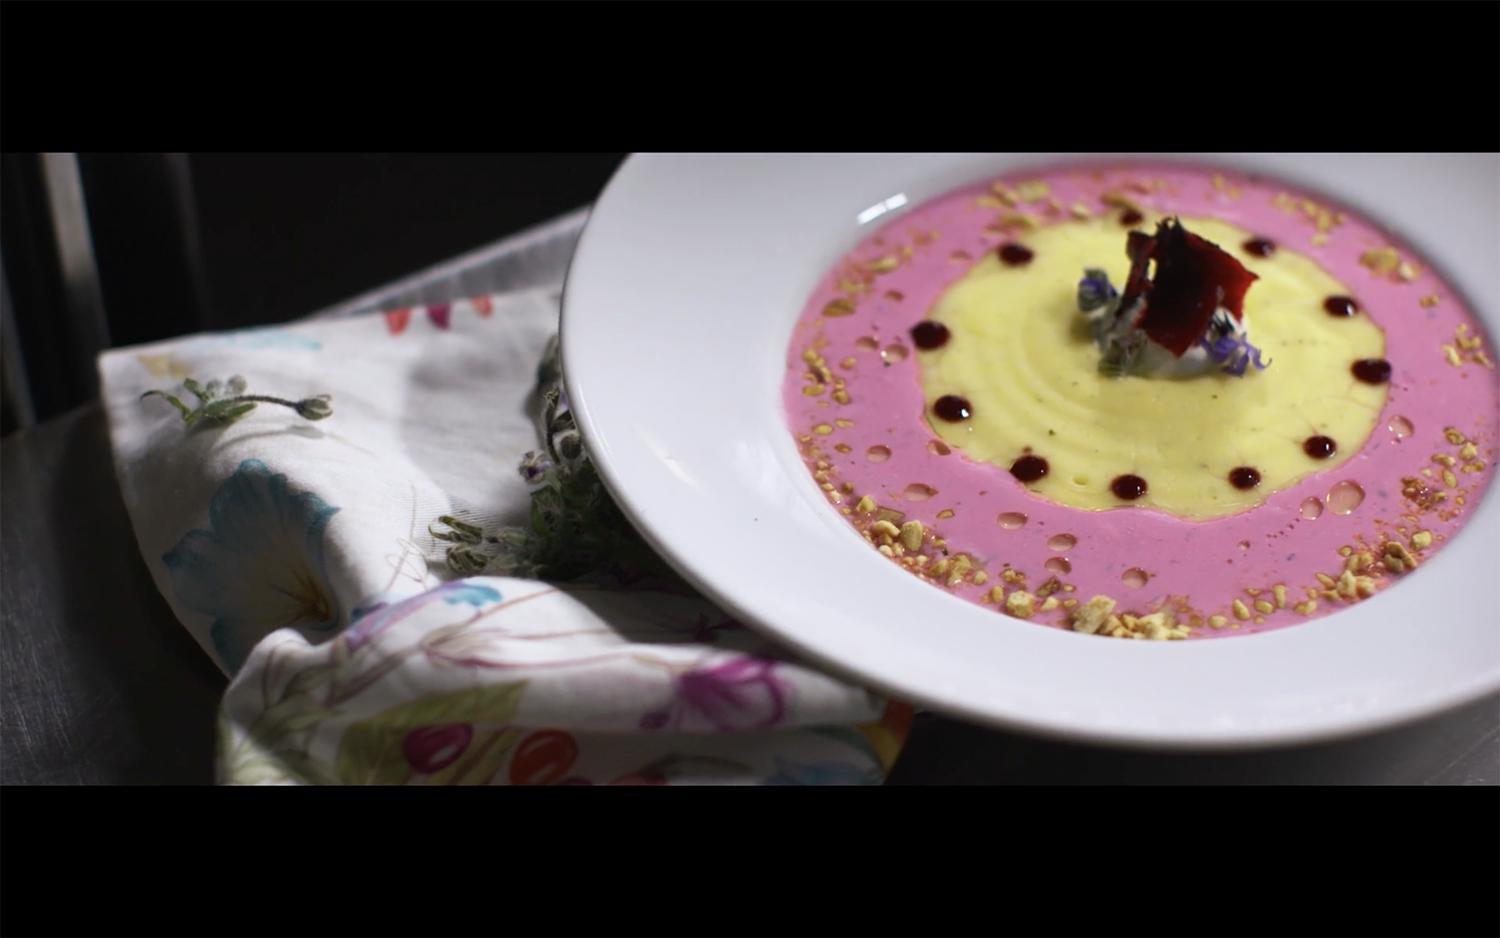 Dish of pink and yellow food on floral fabric